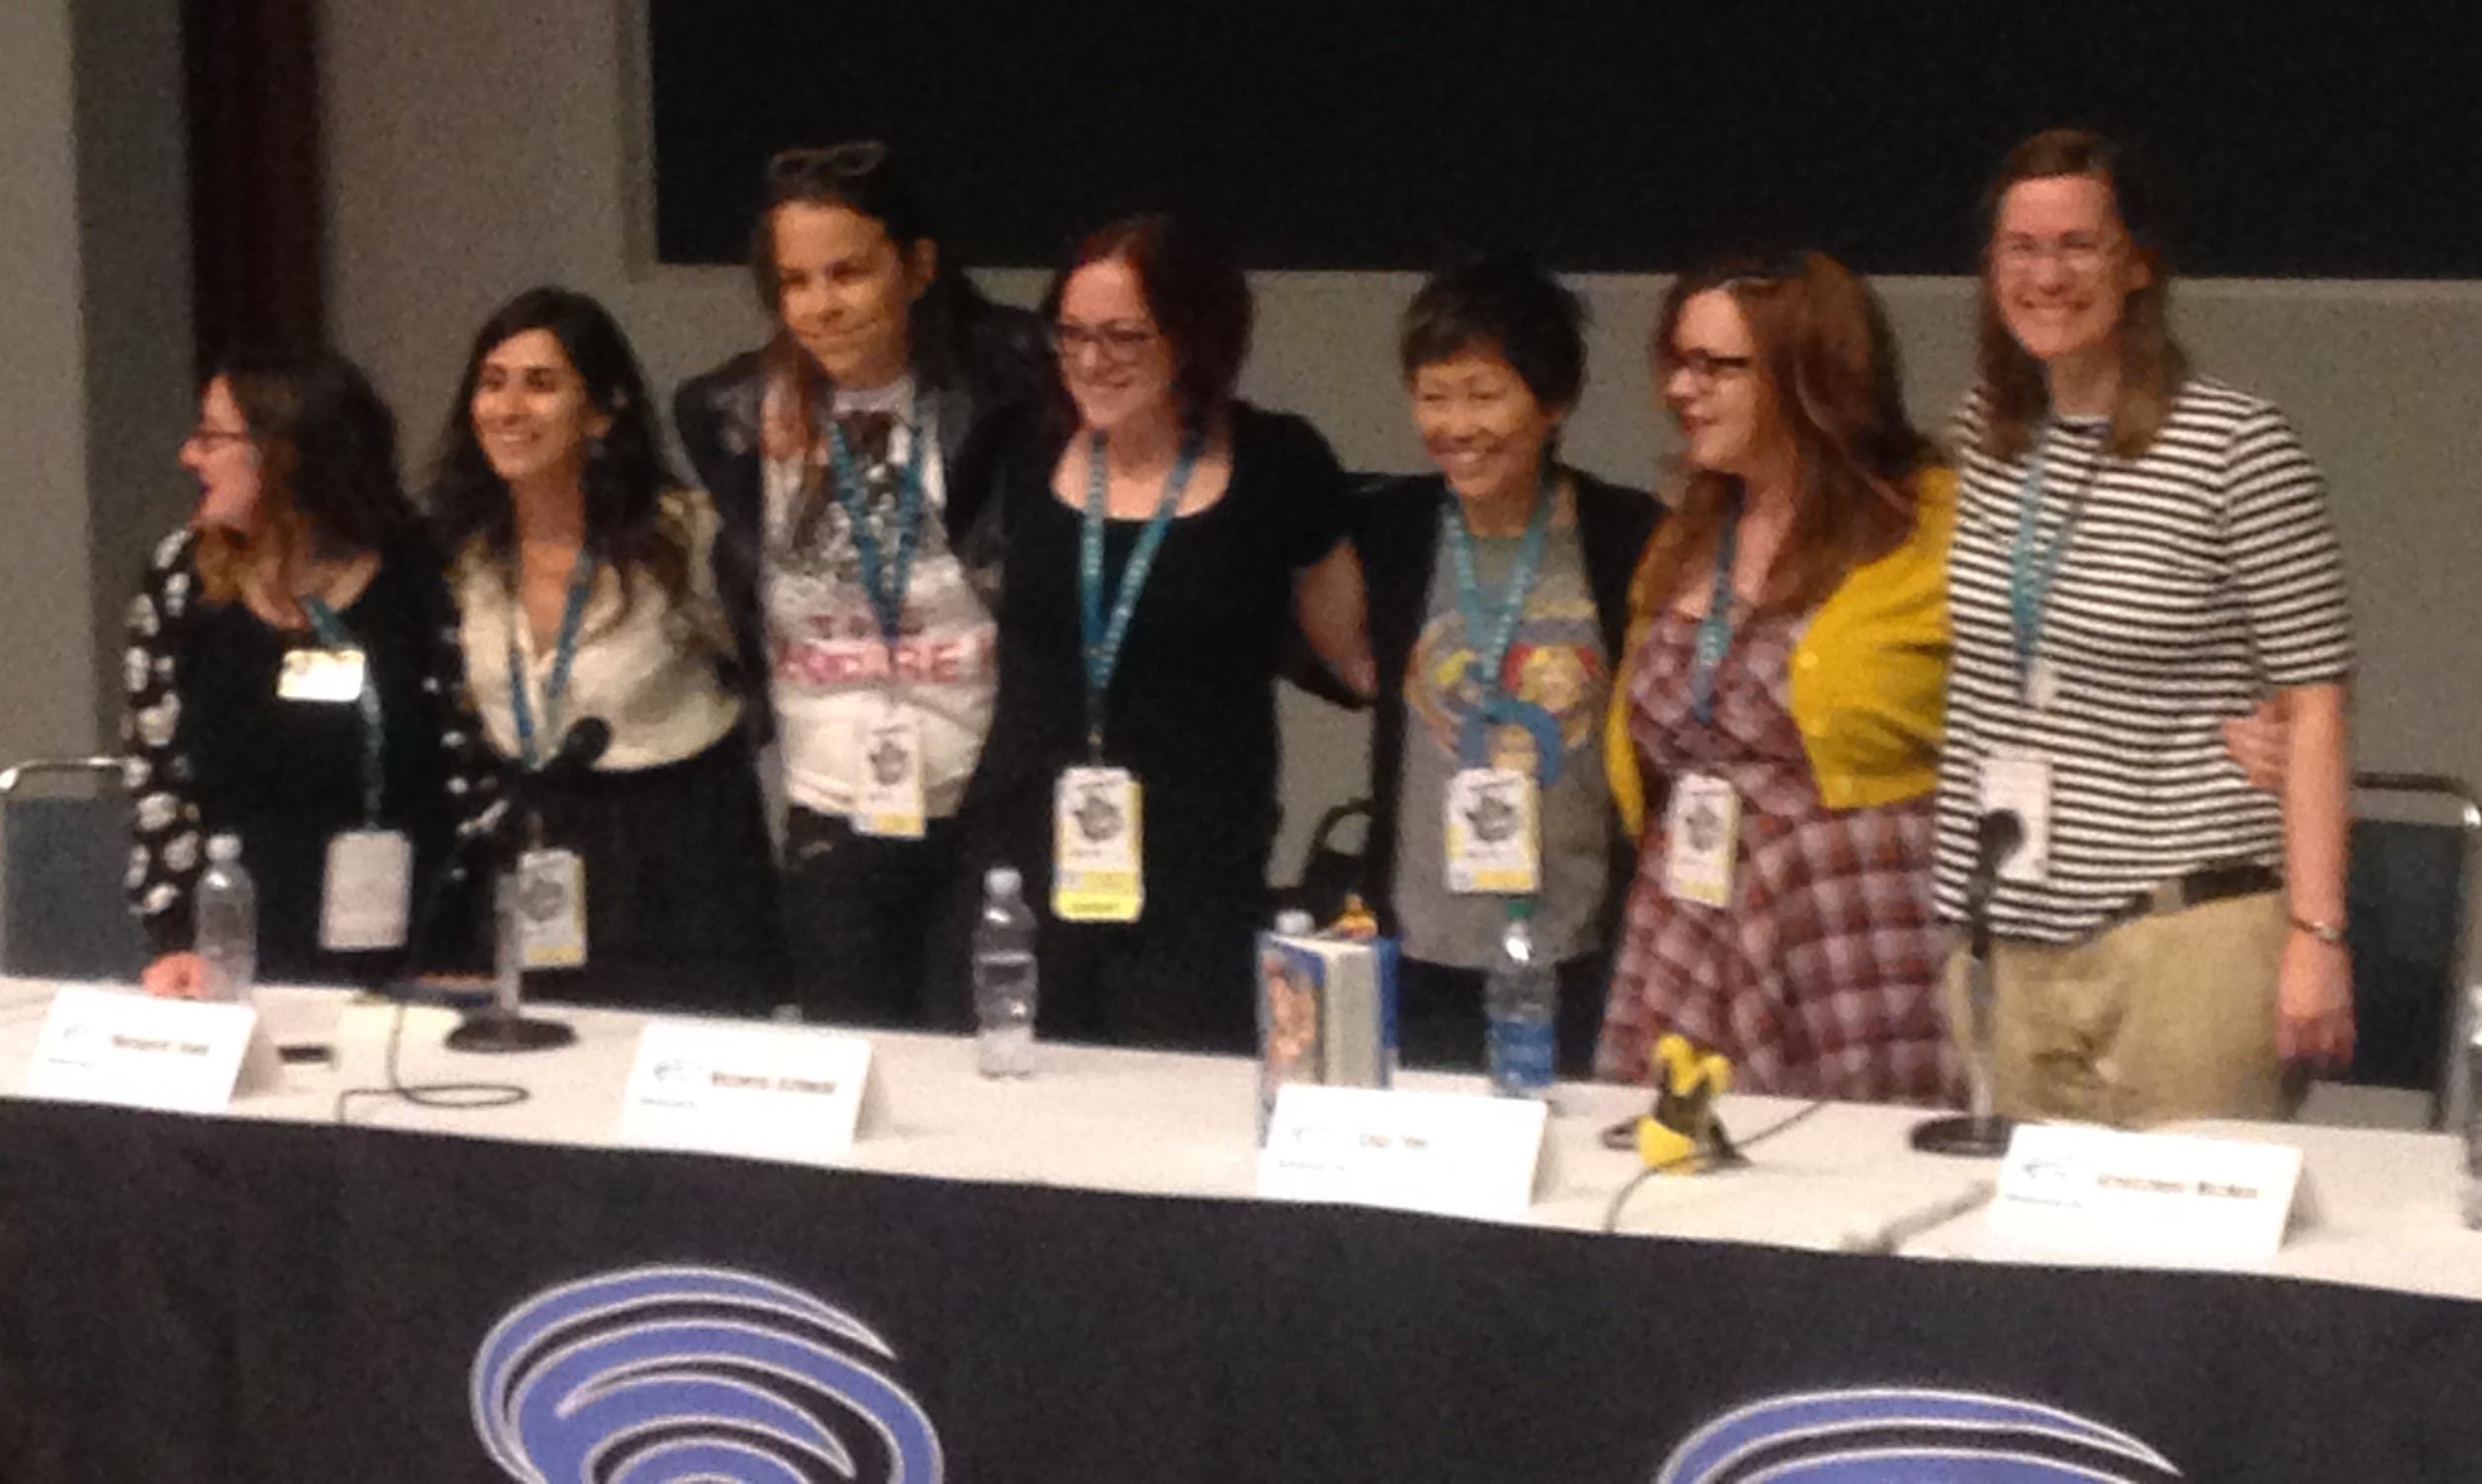 WonderCon Building Worlds with Words Panel, March 25. L to r: Cecil Castellucci, Aditi Khorana, Margaret Stohl, Victoria Schwab, Lisa Yee, Gretchen McNeil, and Caragh O'Brien